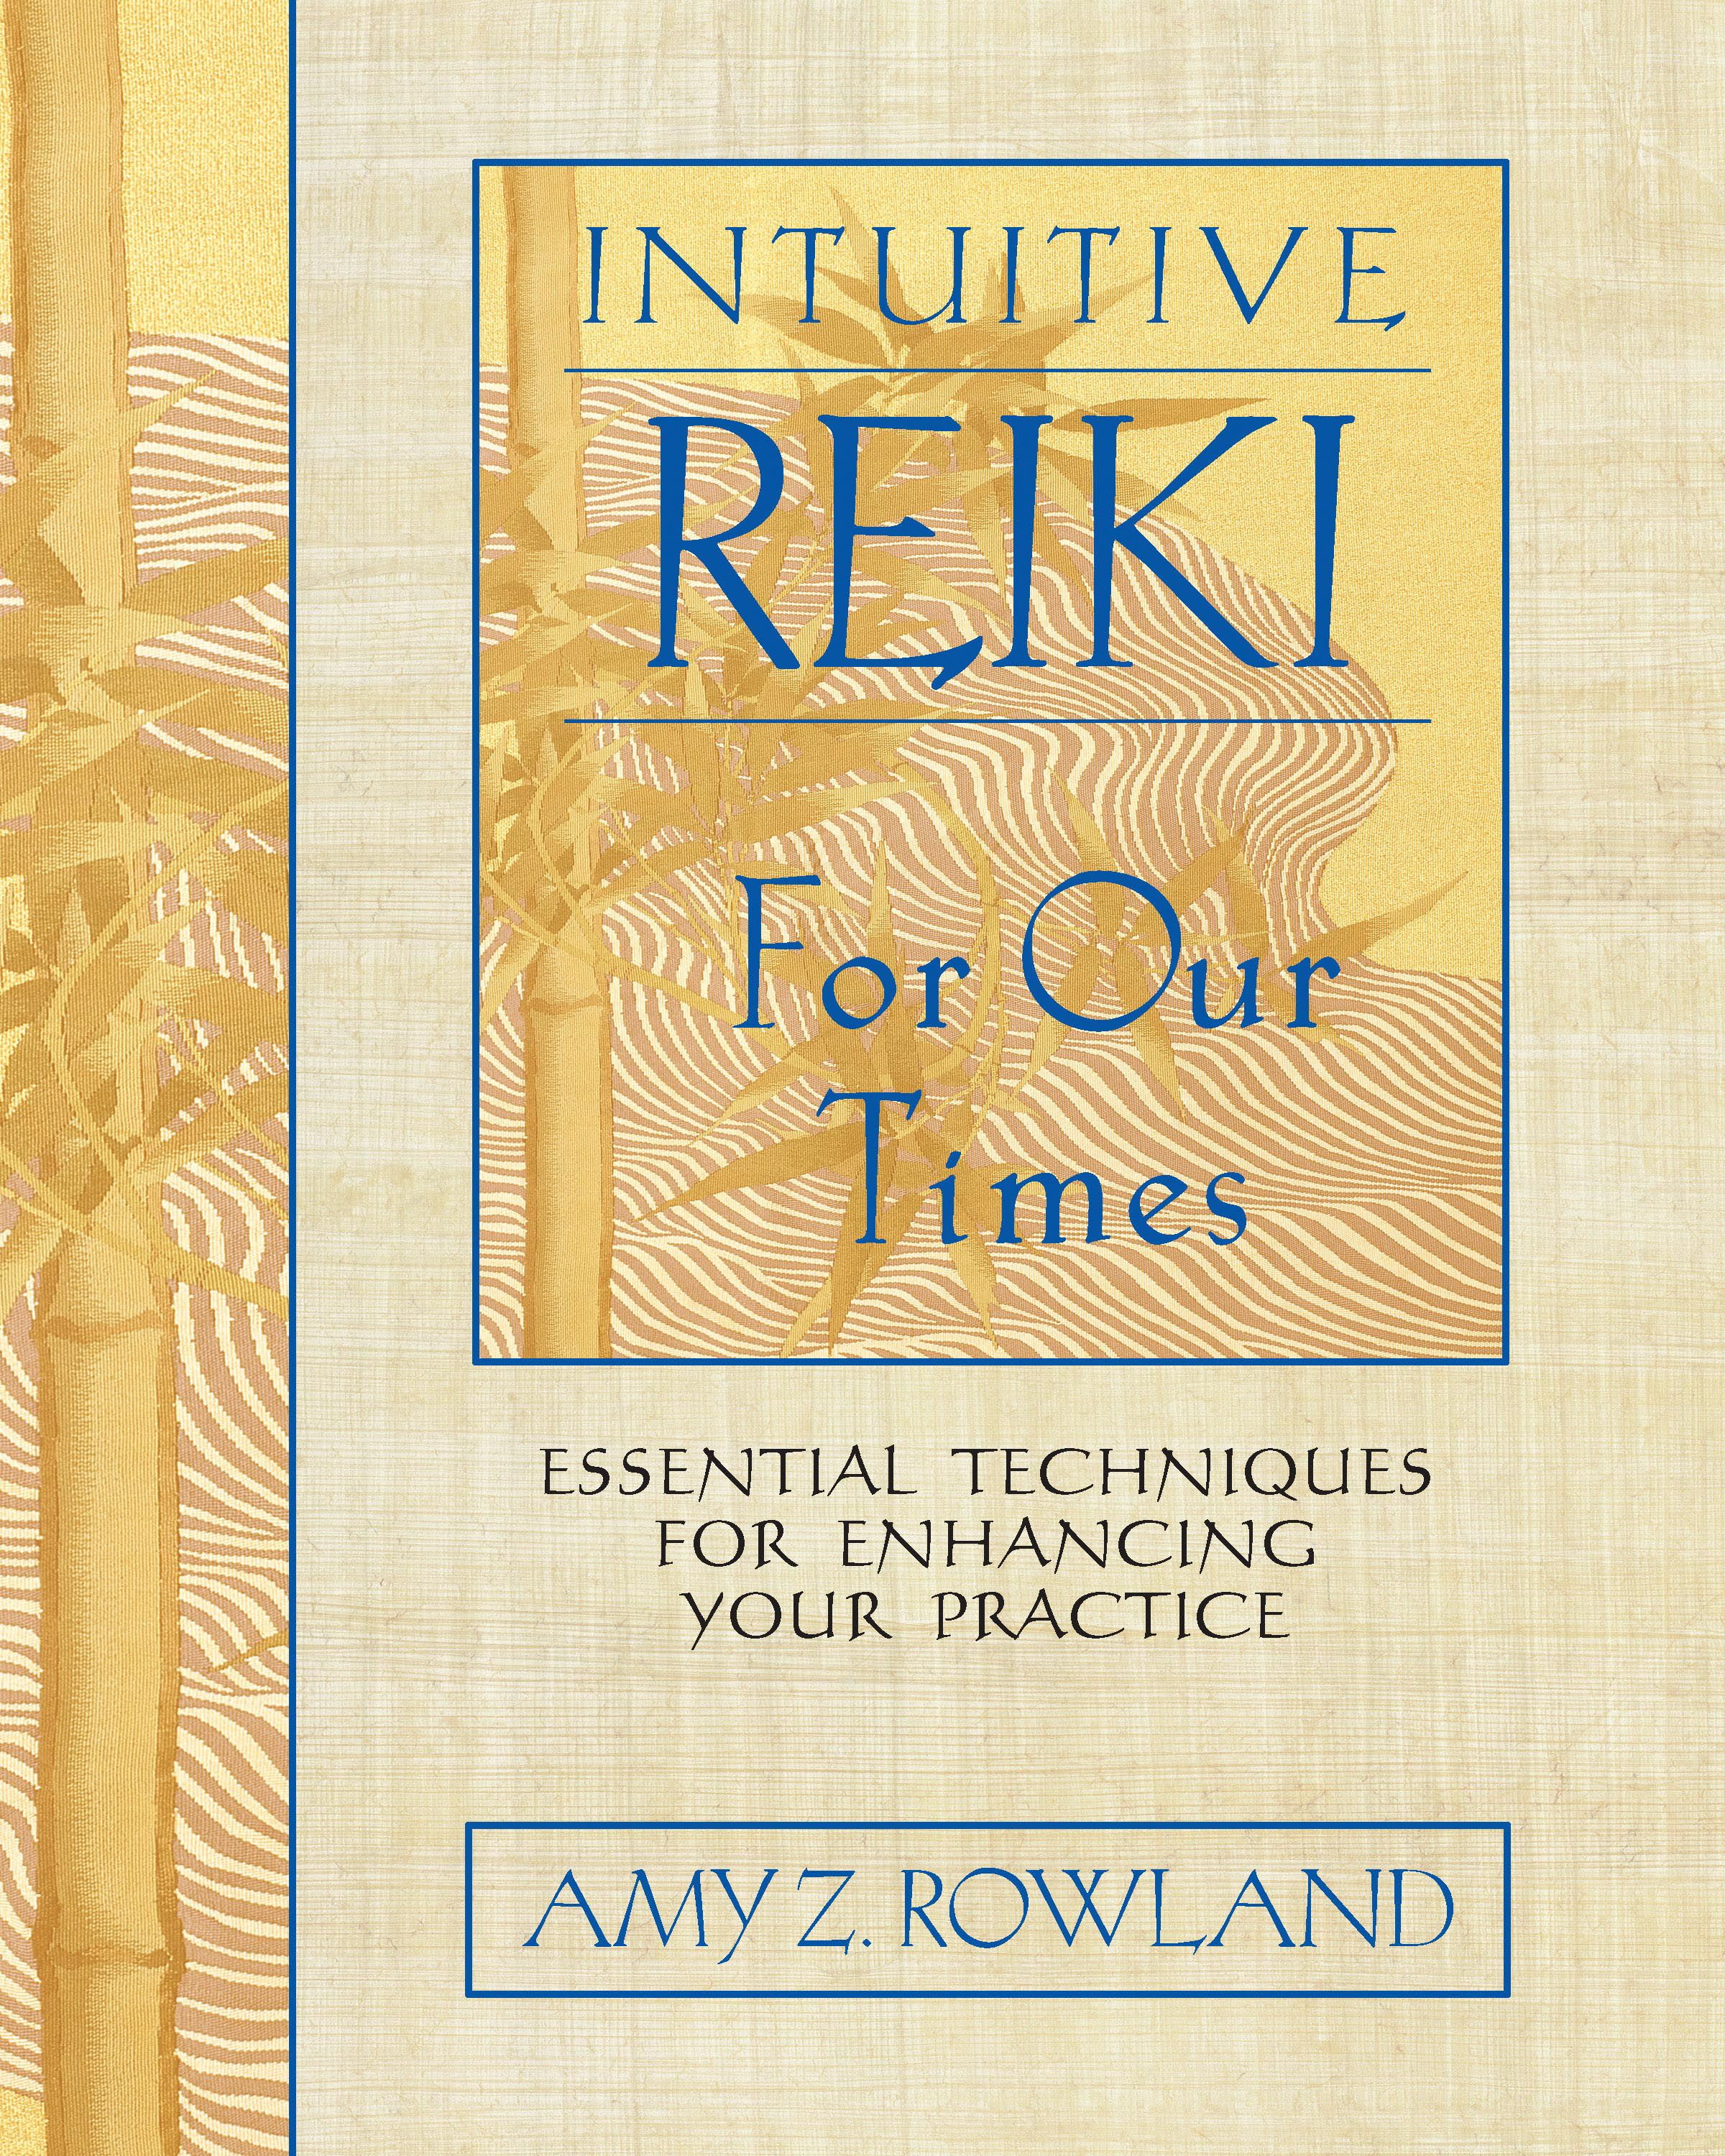 Intuitive reiki for our times 9781594770999 hr